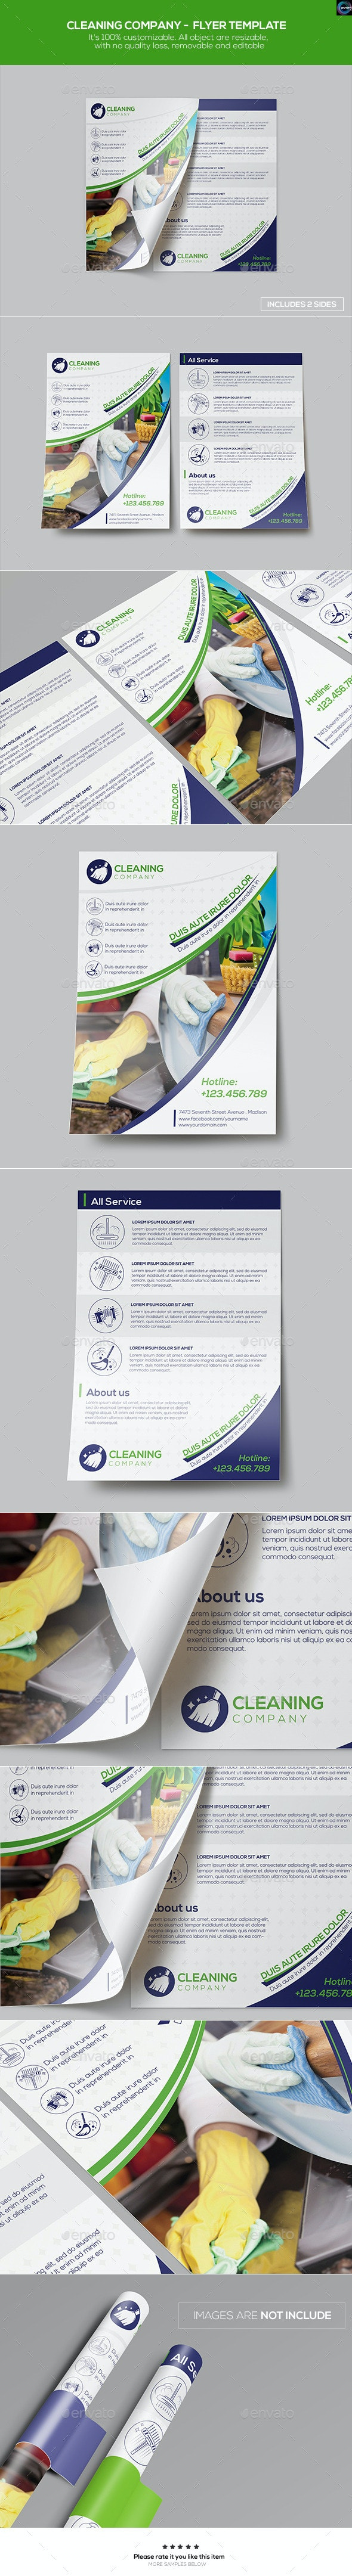 Cleaning Company - Flyer Template - Corporate Flyers